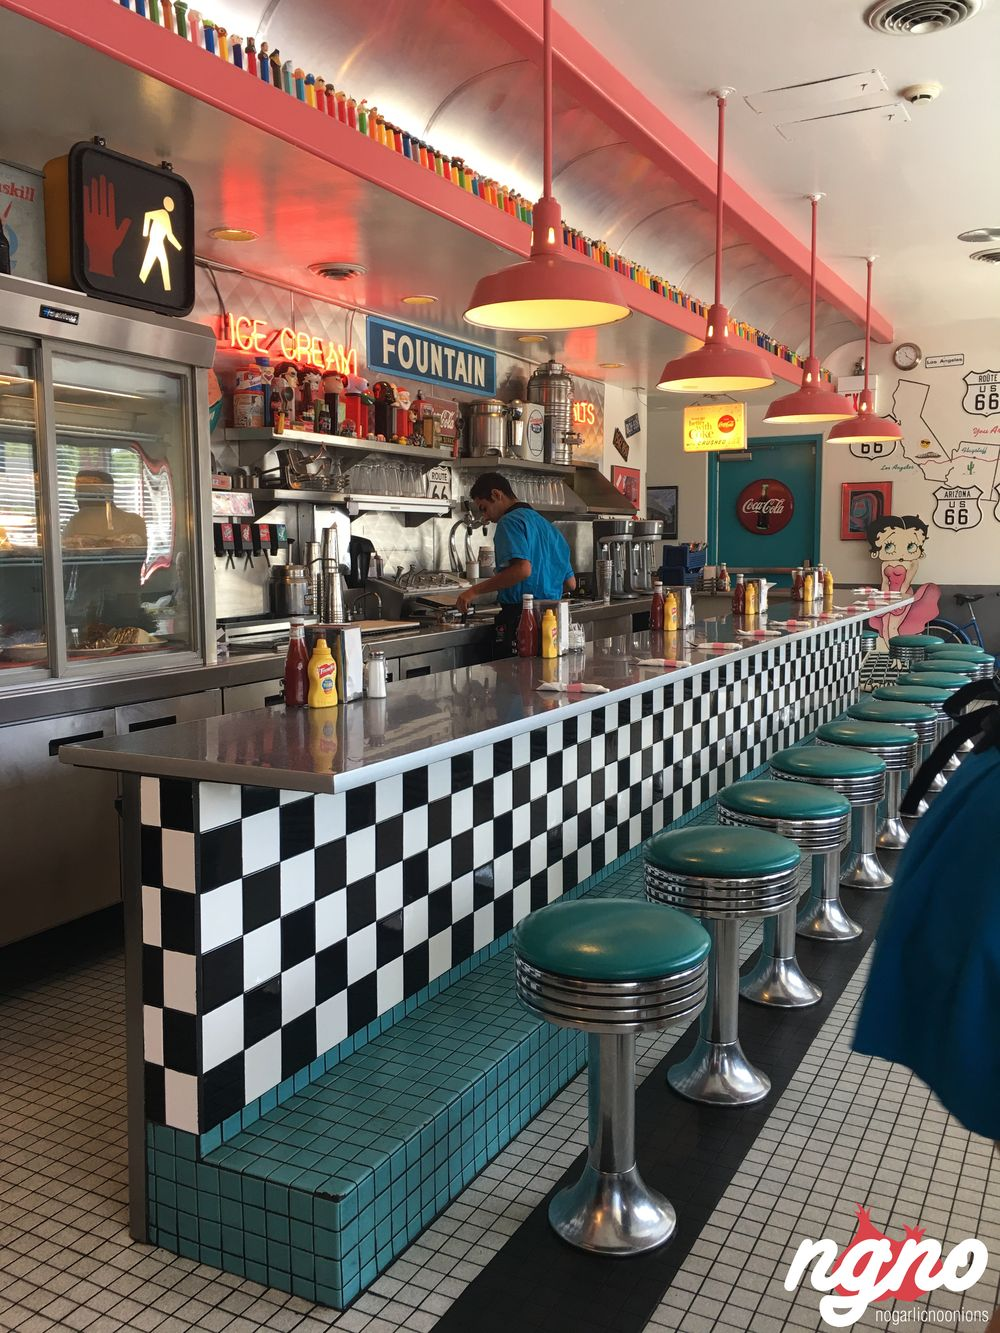 route-66-diner-new-mexico302017-03-20-10-21-02